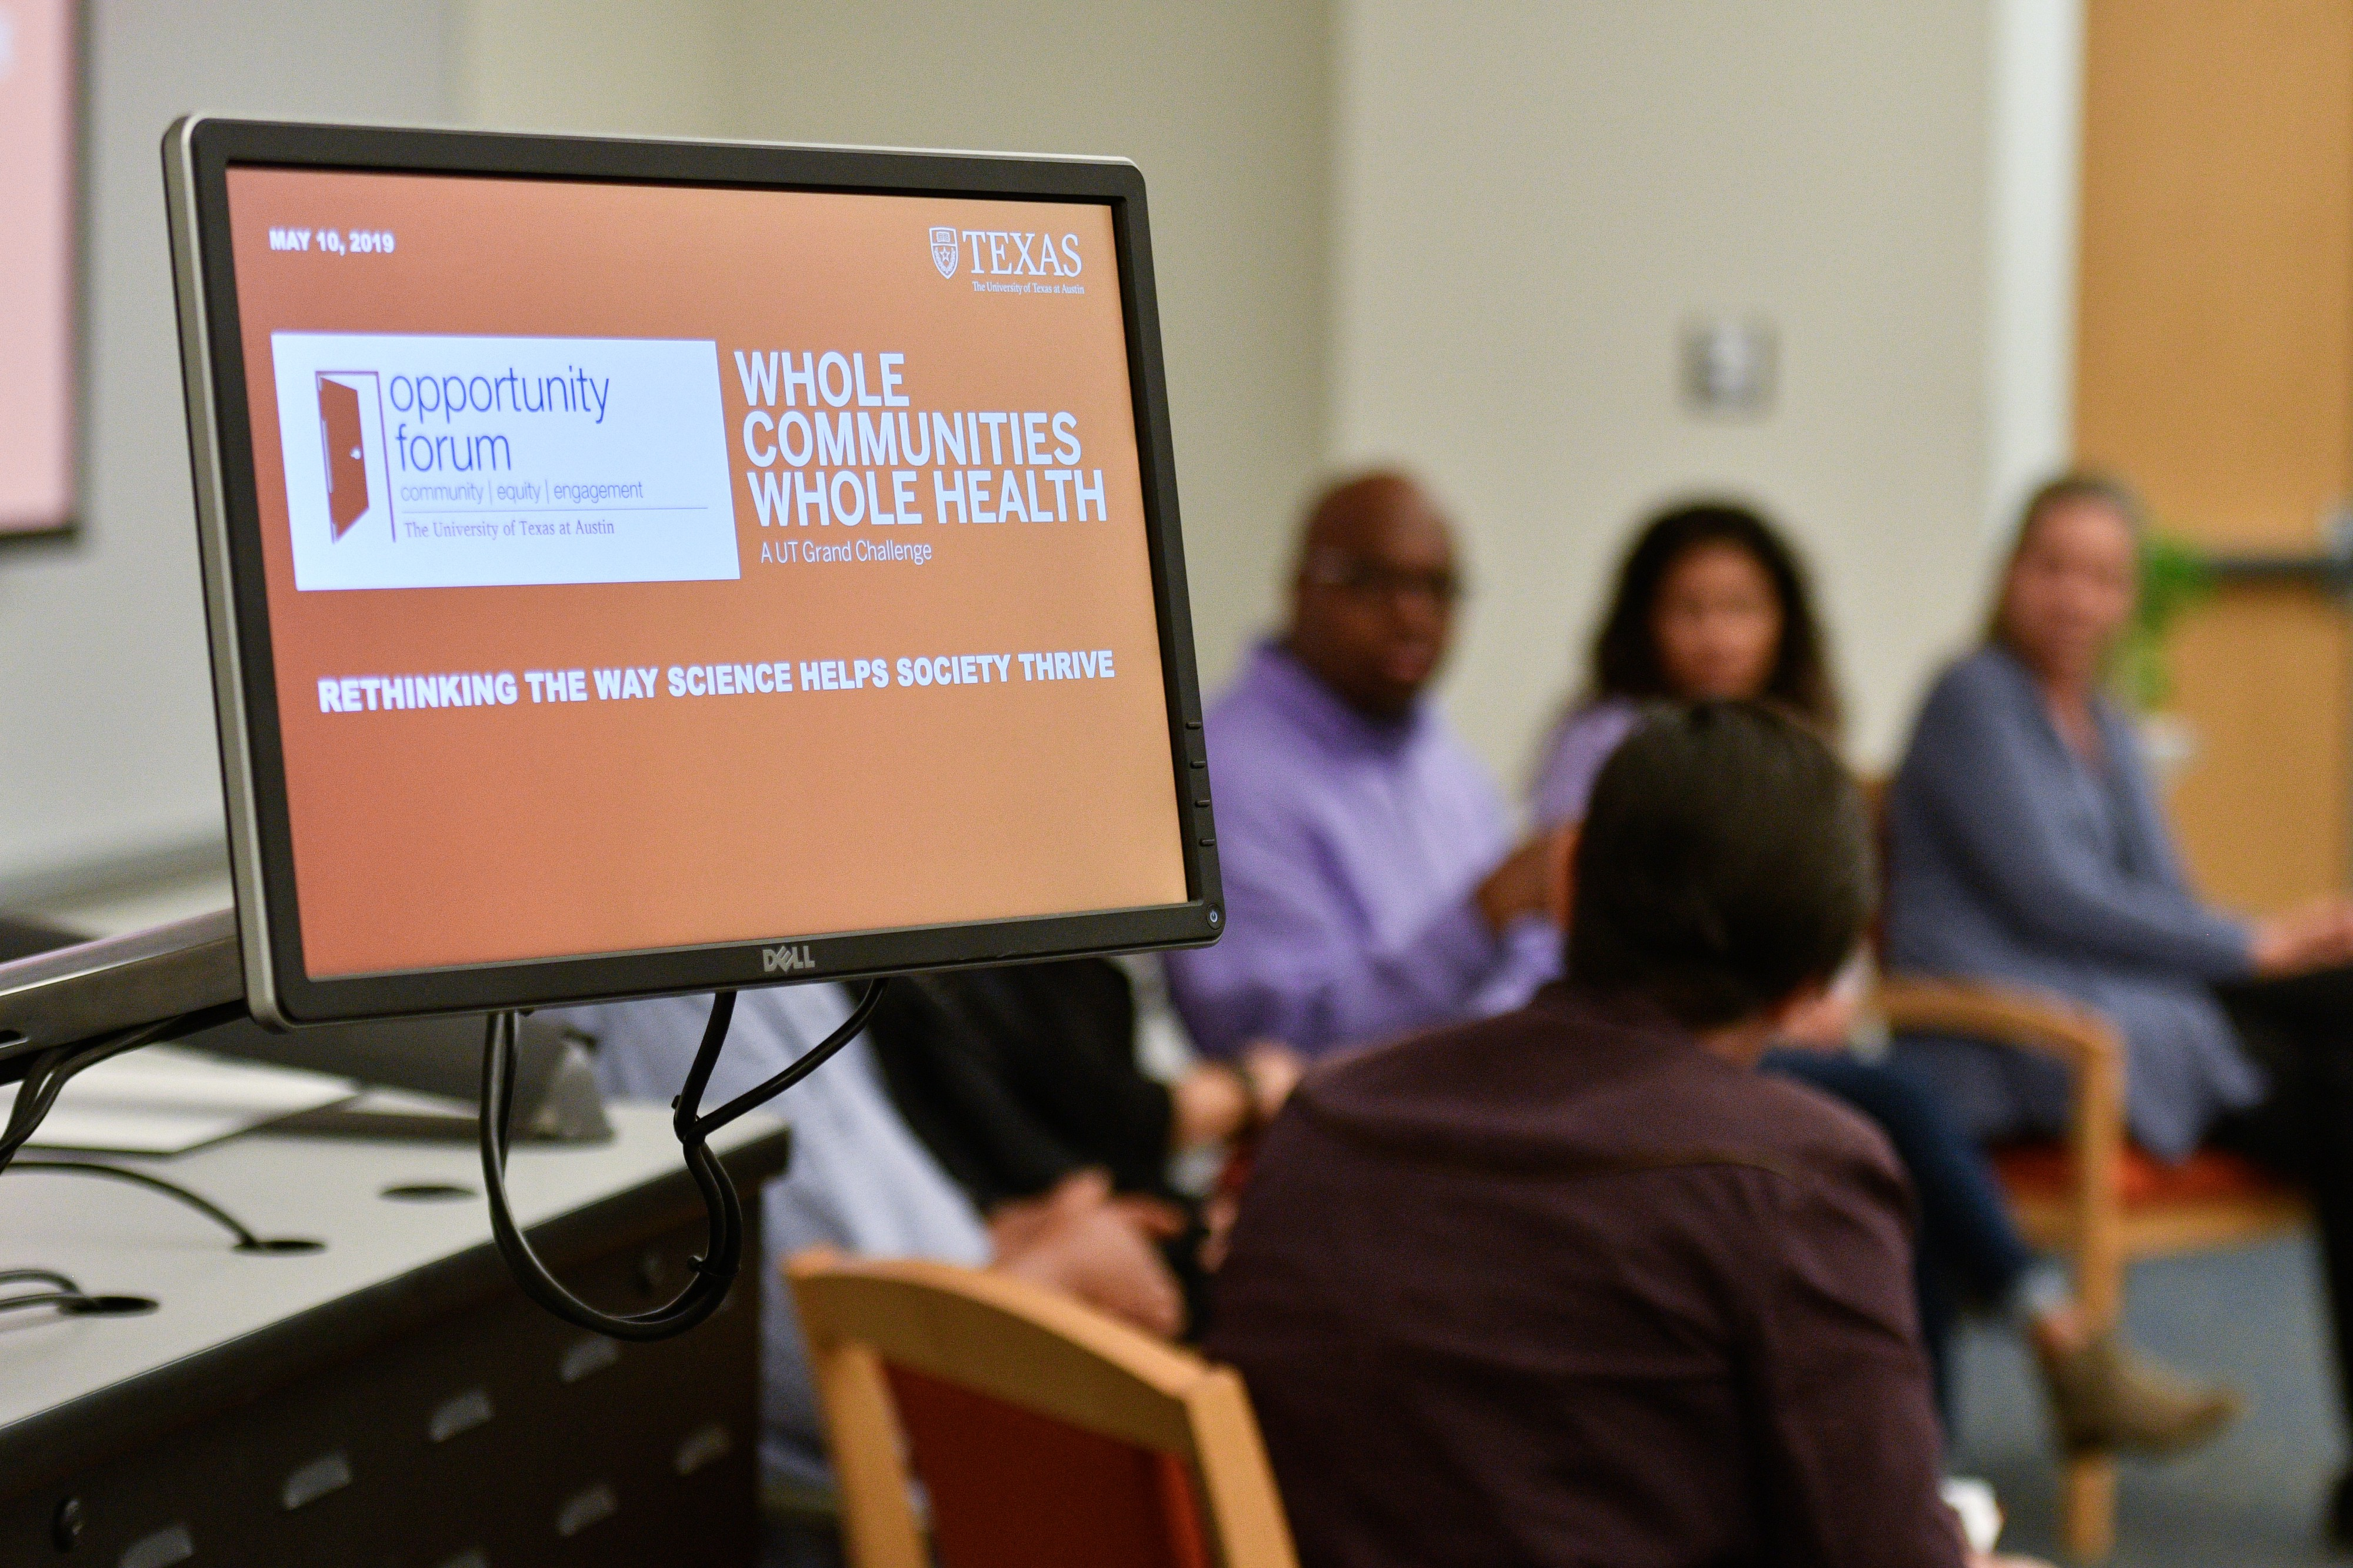 Whole Communities–Whole Health researchers and community advisors sit together on an Opportunity Forum panel.